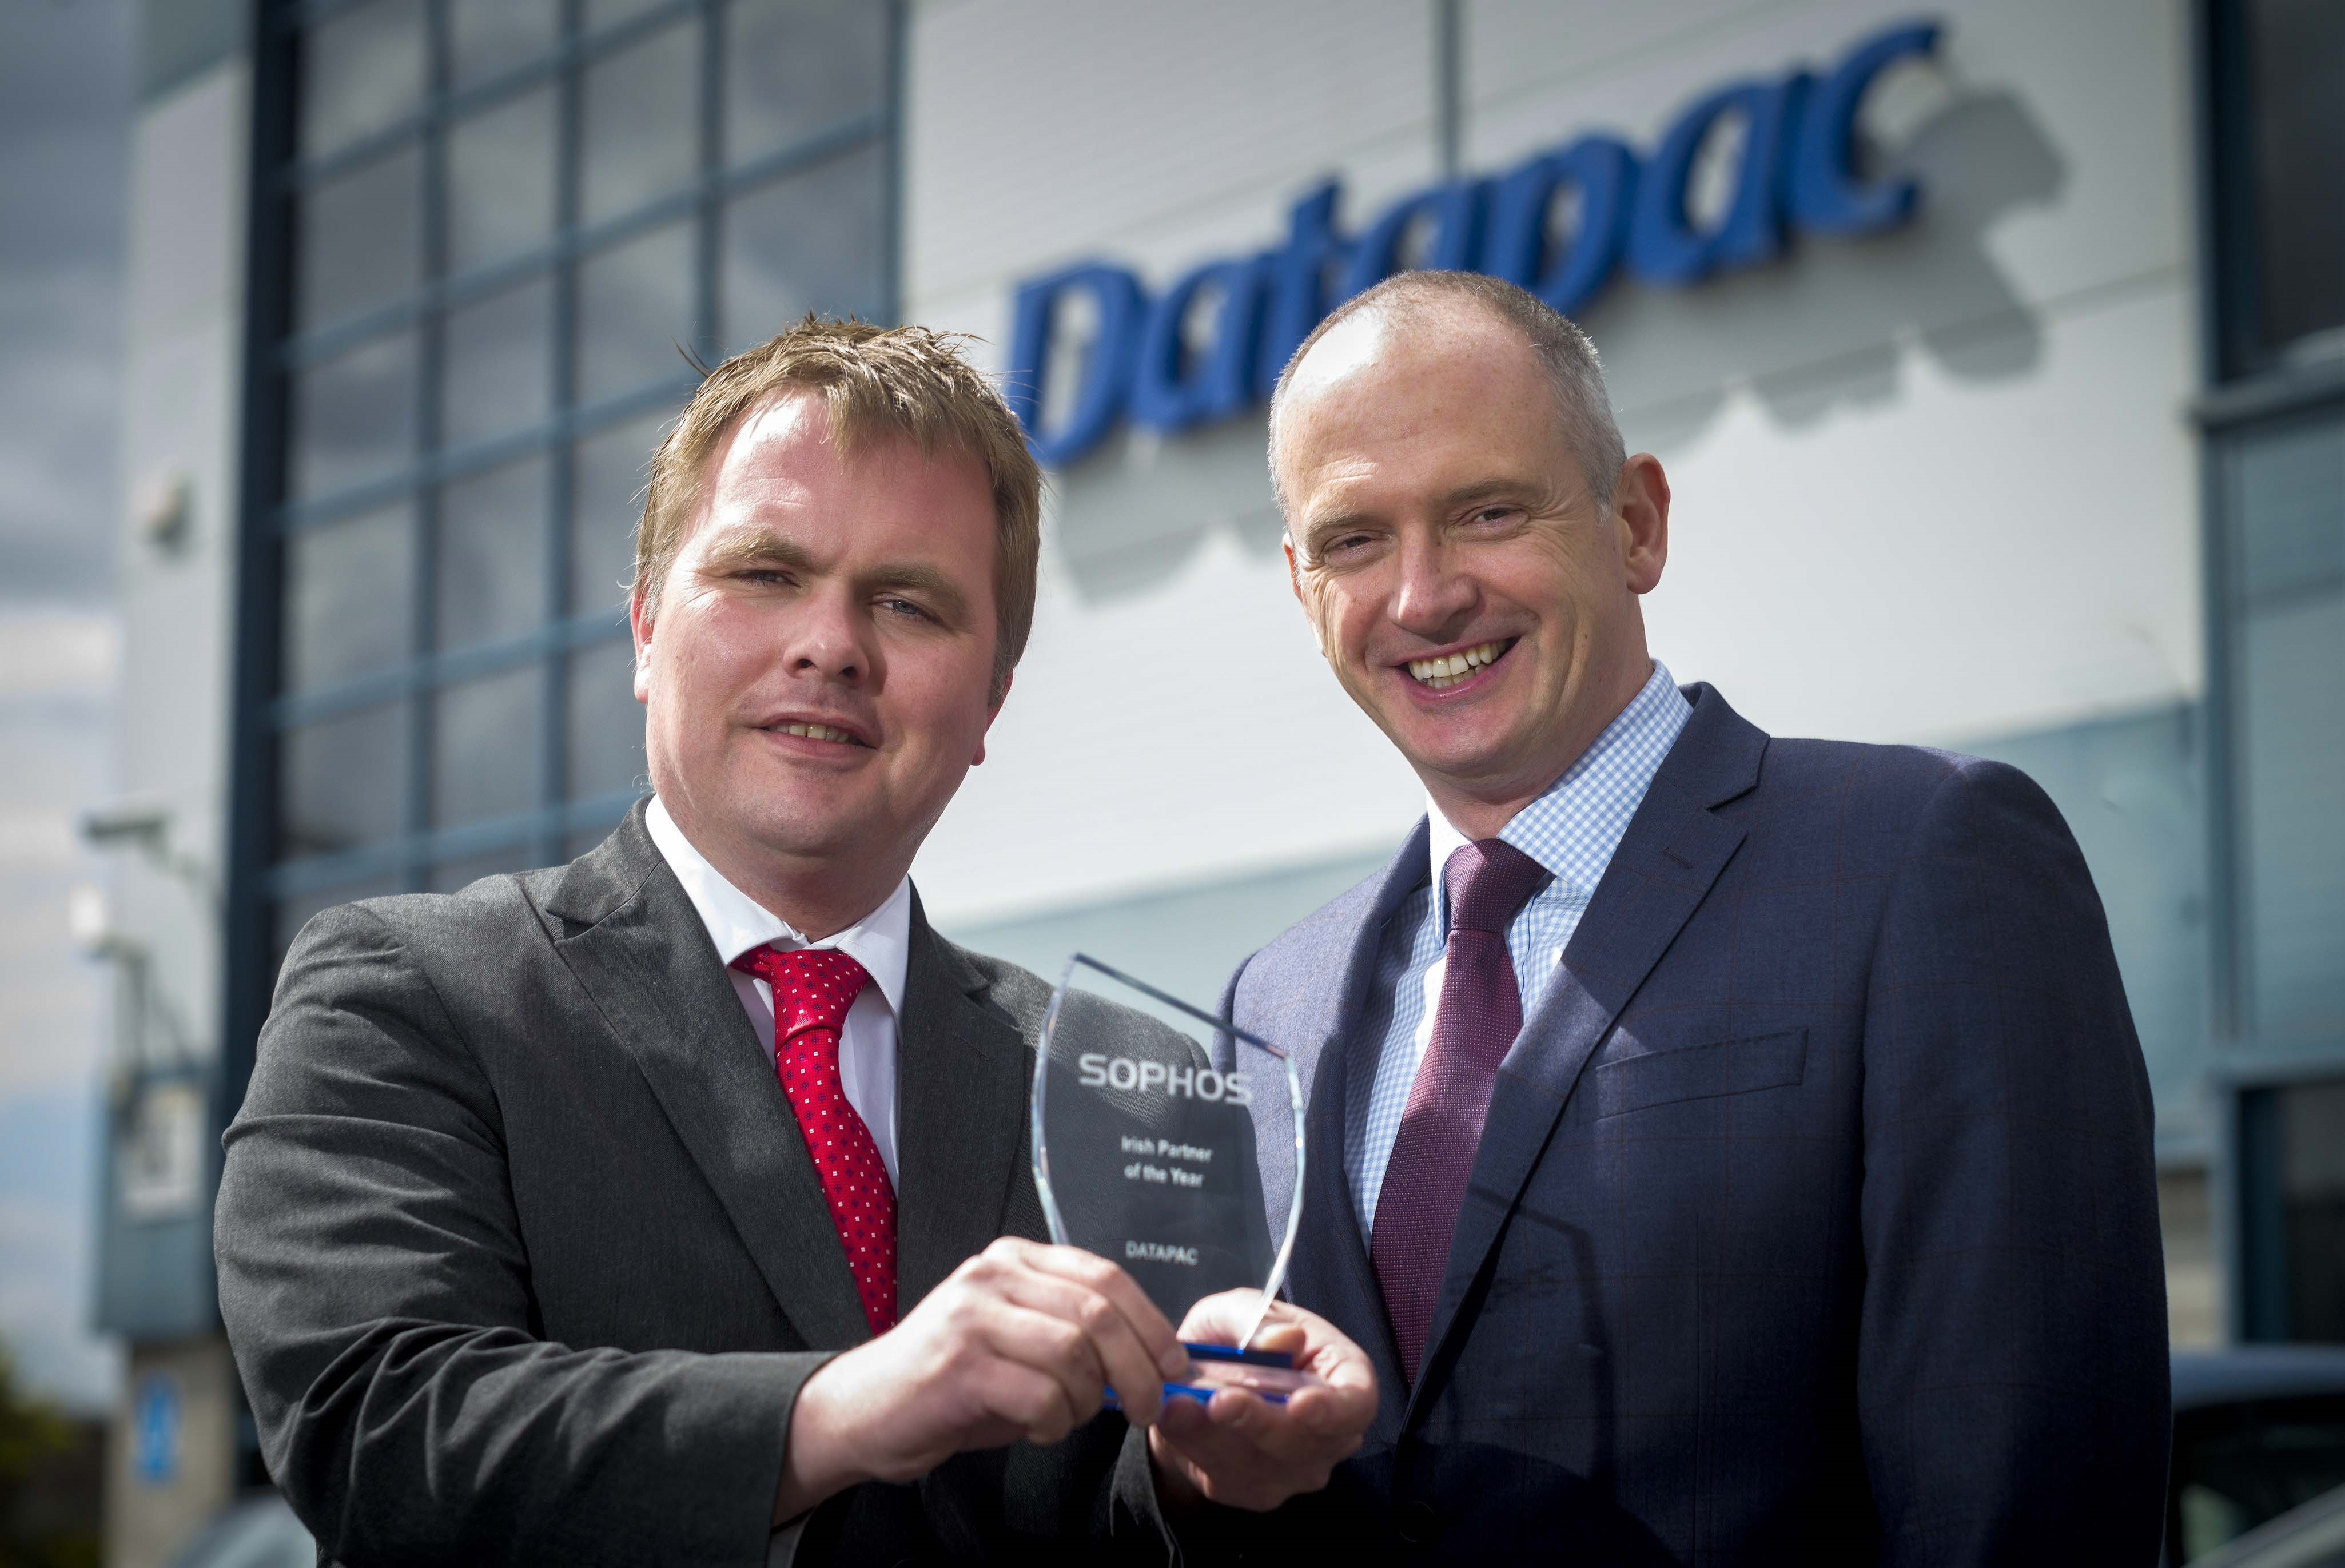 Datapac awarded Sophos Irish Partner of the Year for fourth year running